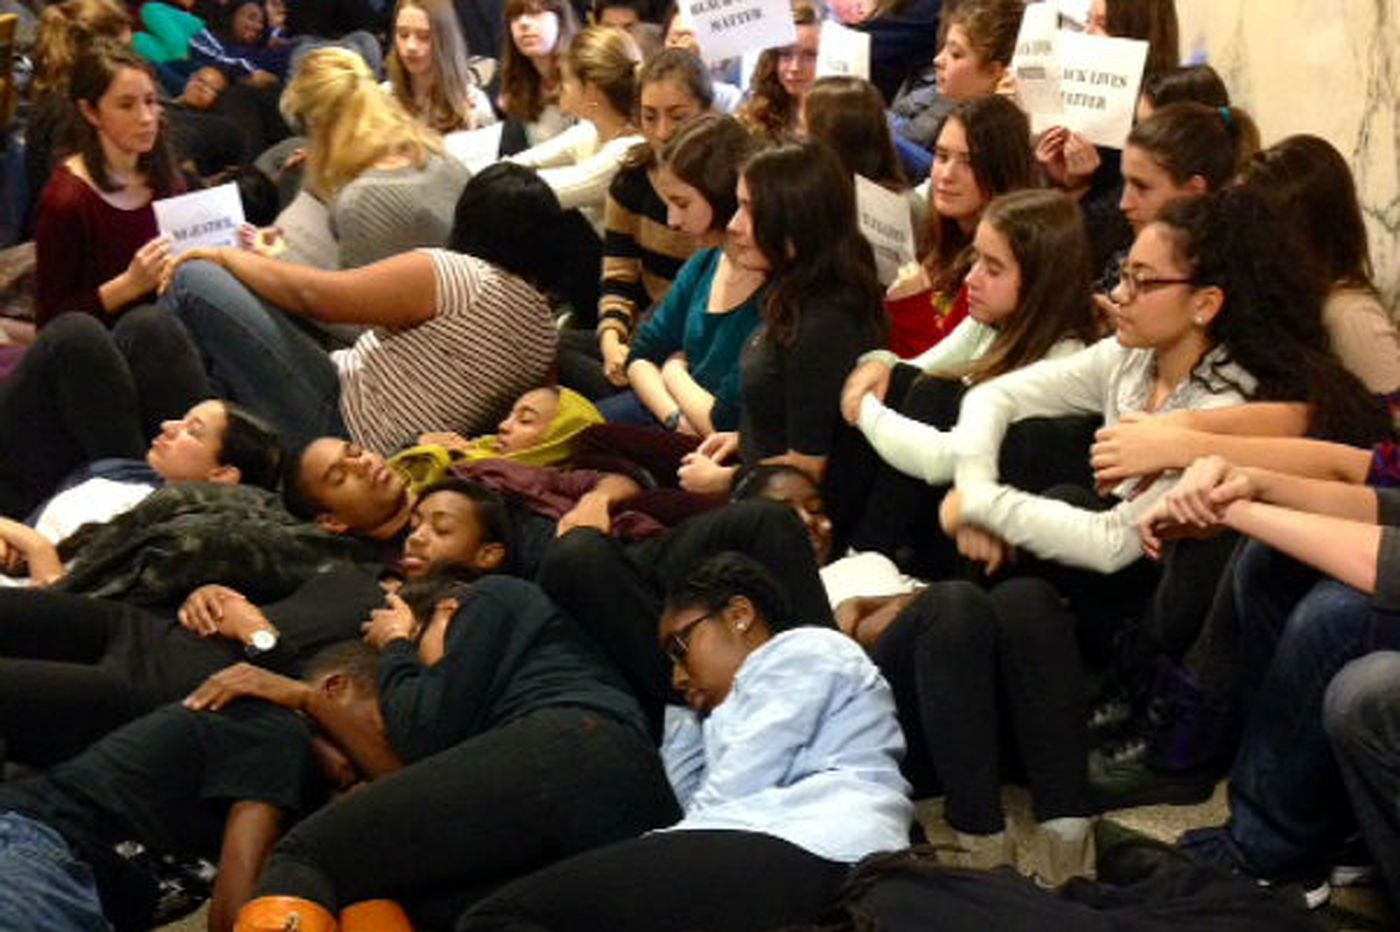 Students stage die-ins to protest Ferguson, New York grand jury verdicts